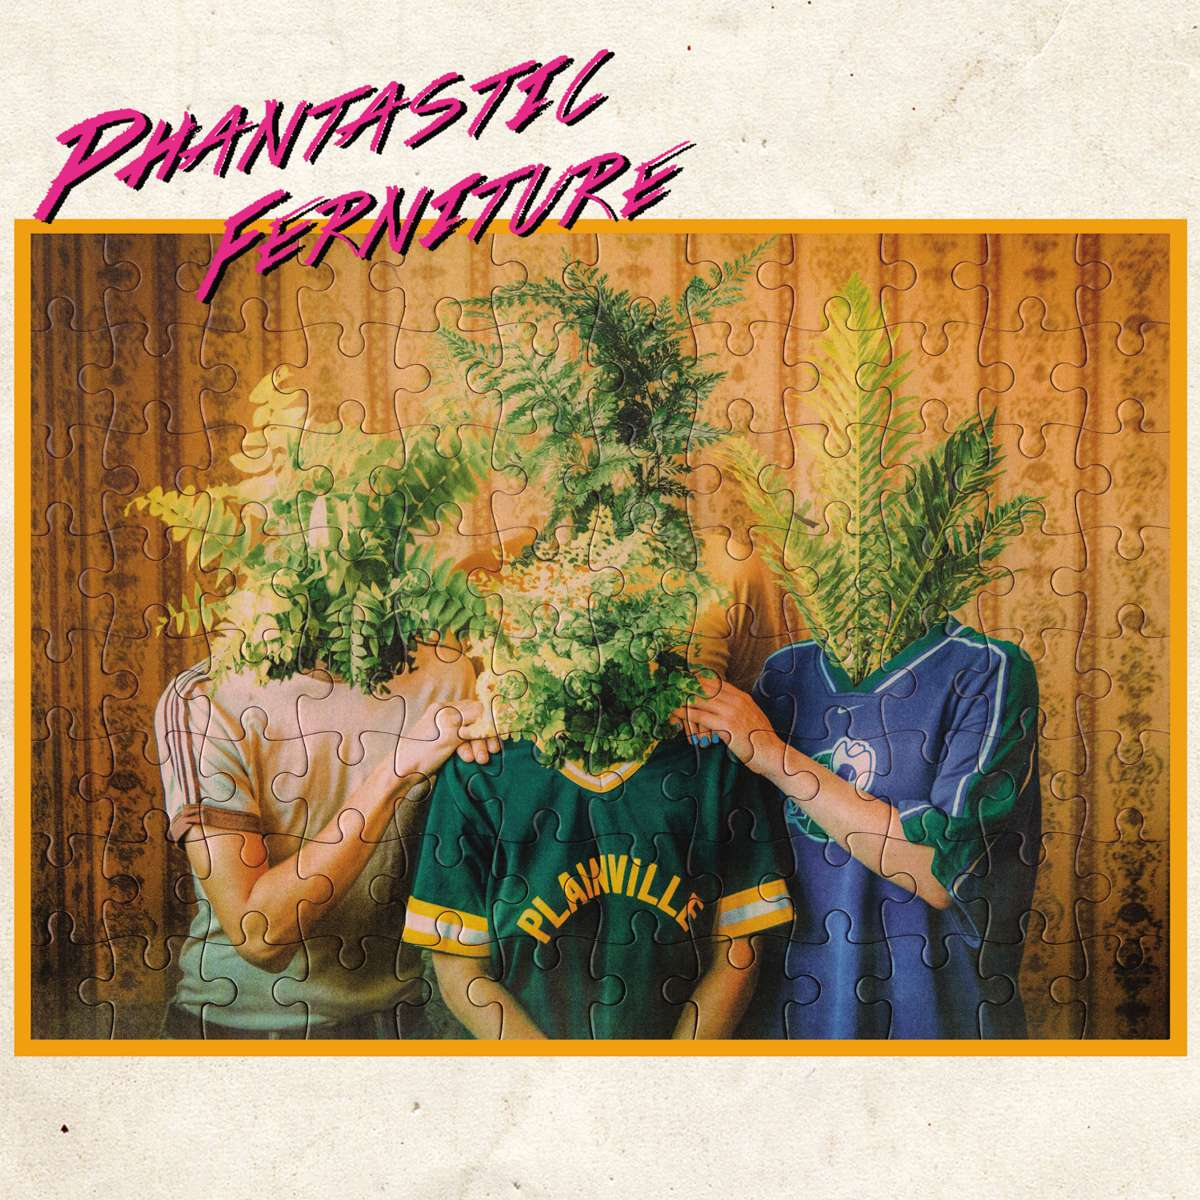 Phantastic Ferniture 'Phantastic Ferniture' album review by Adam Williams for Northern Transmissions.